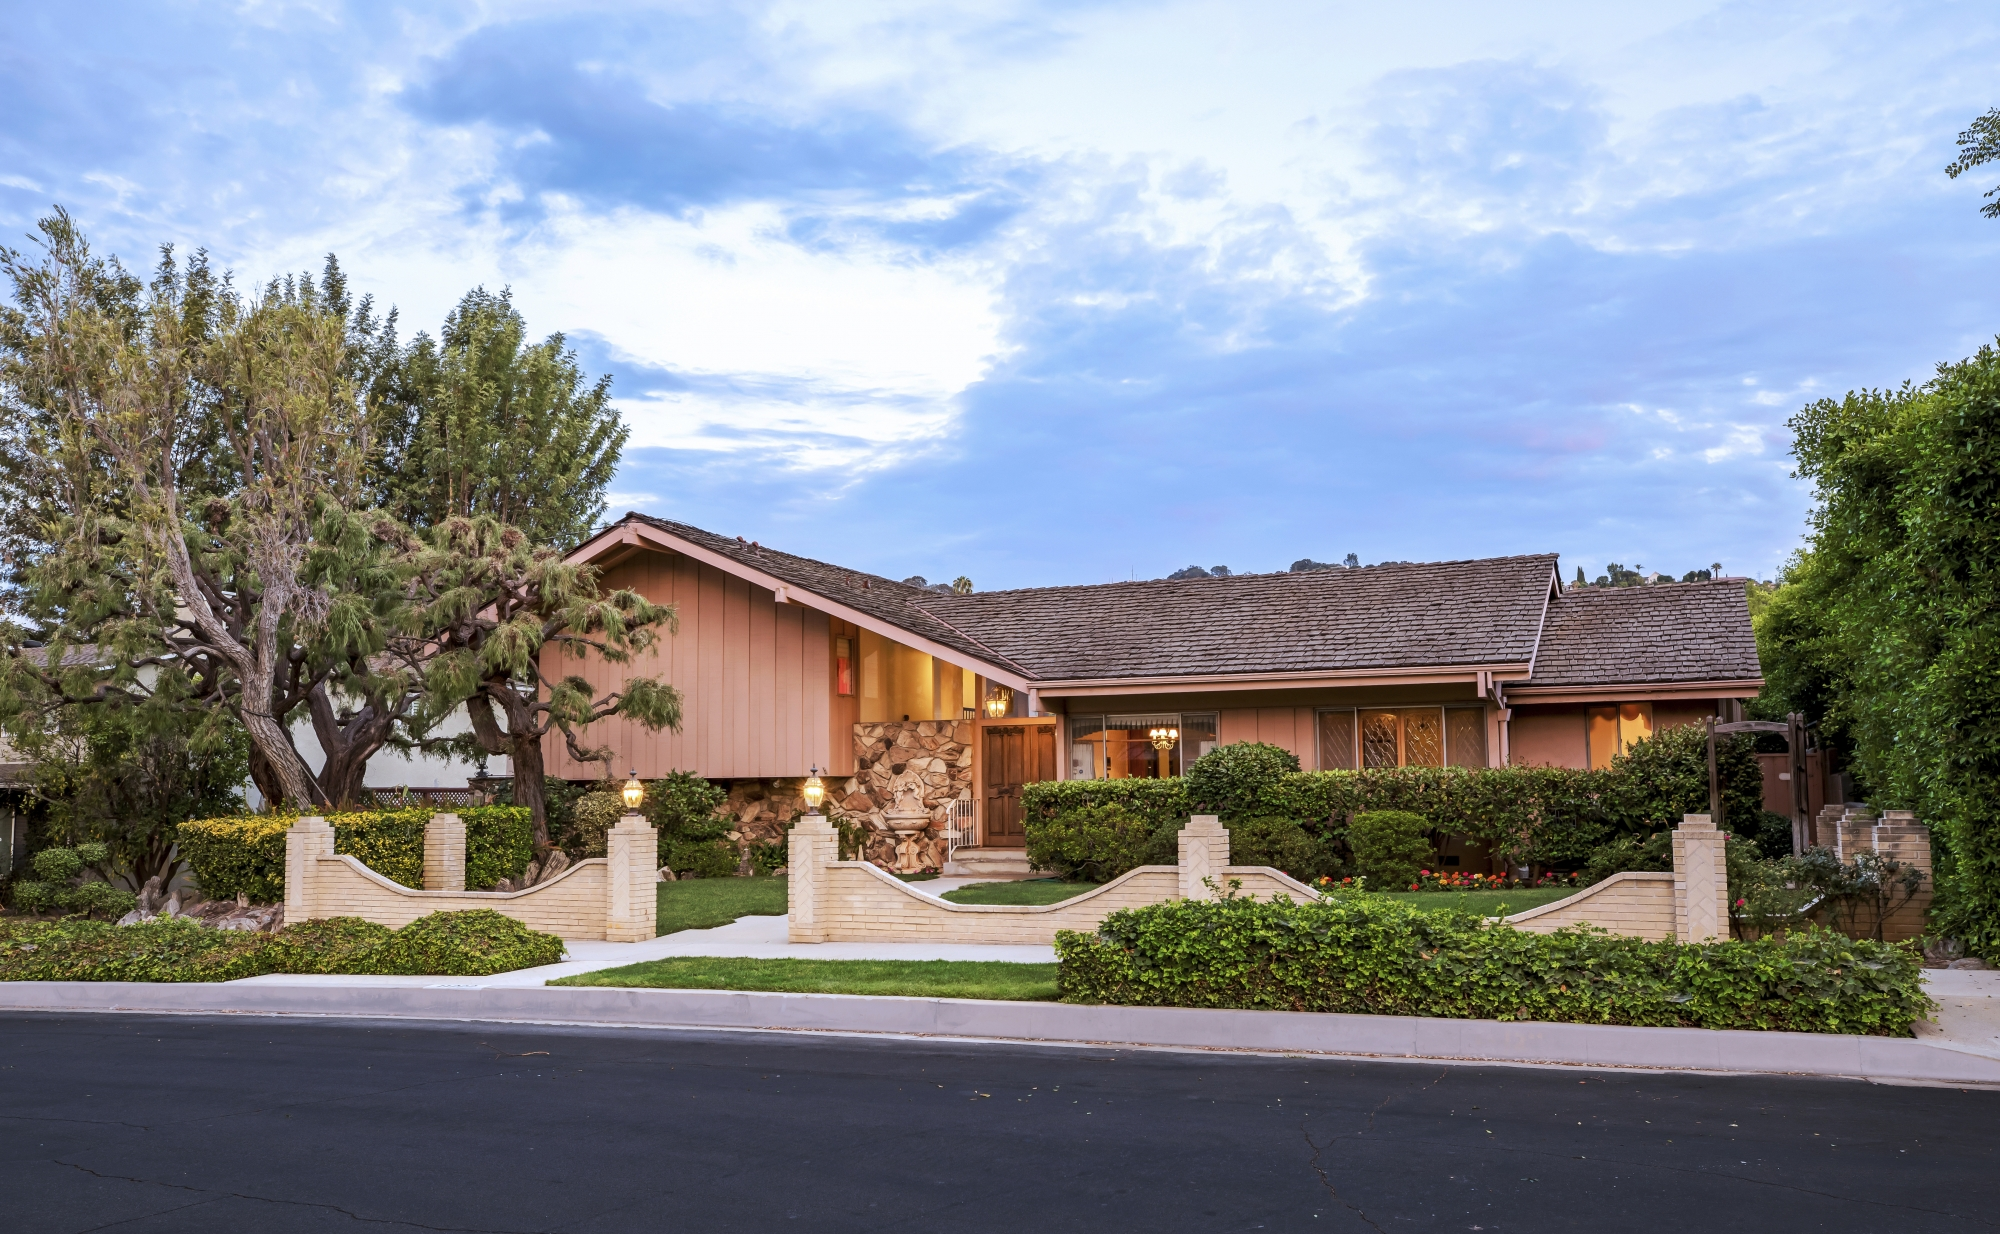 Brady bunch house for sale for nearly 1 9m wtop Modern bathroom north hollywood